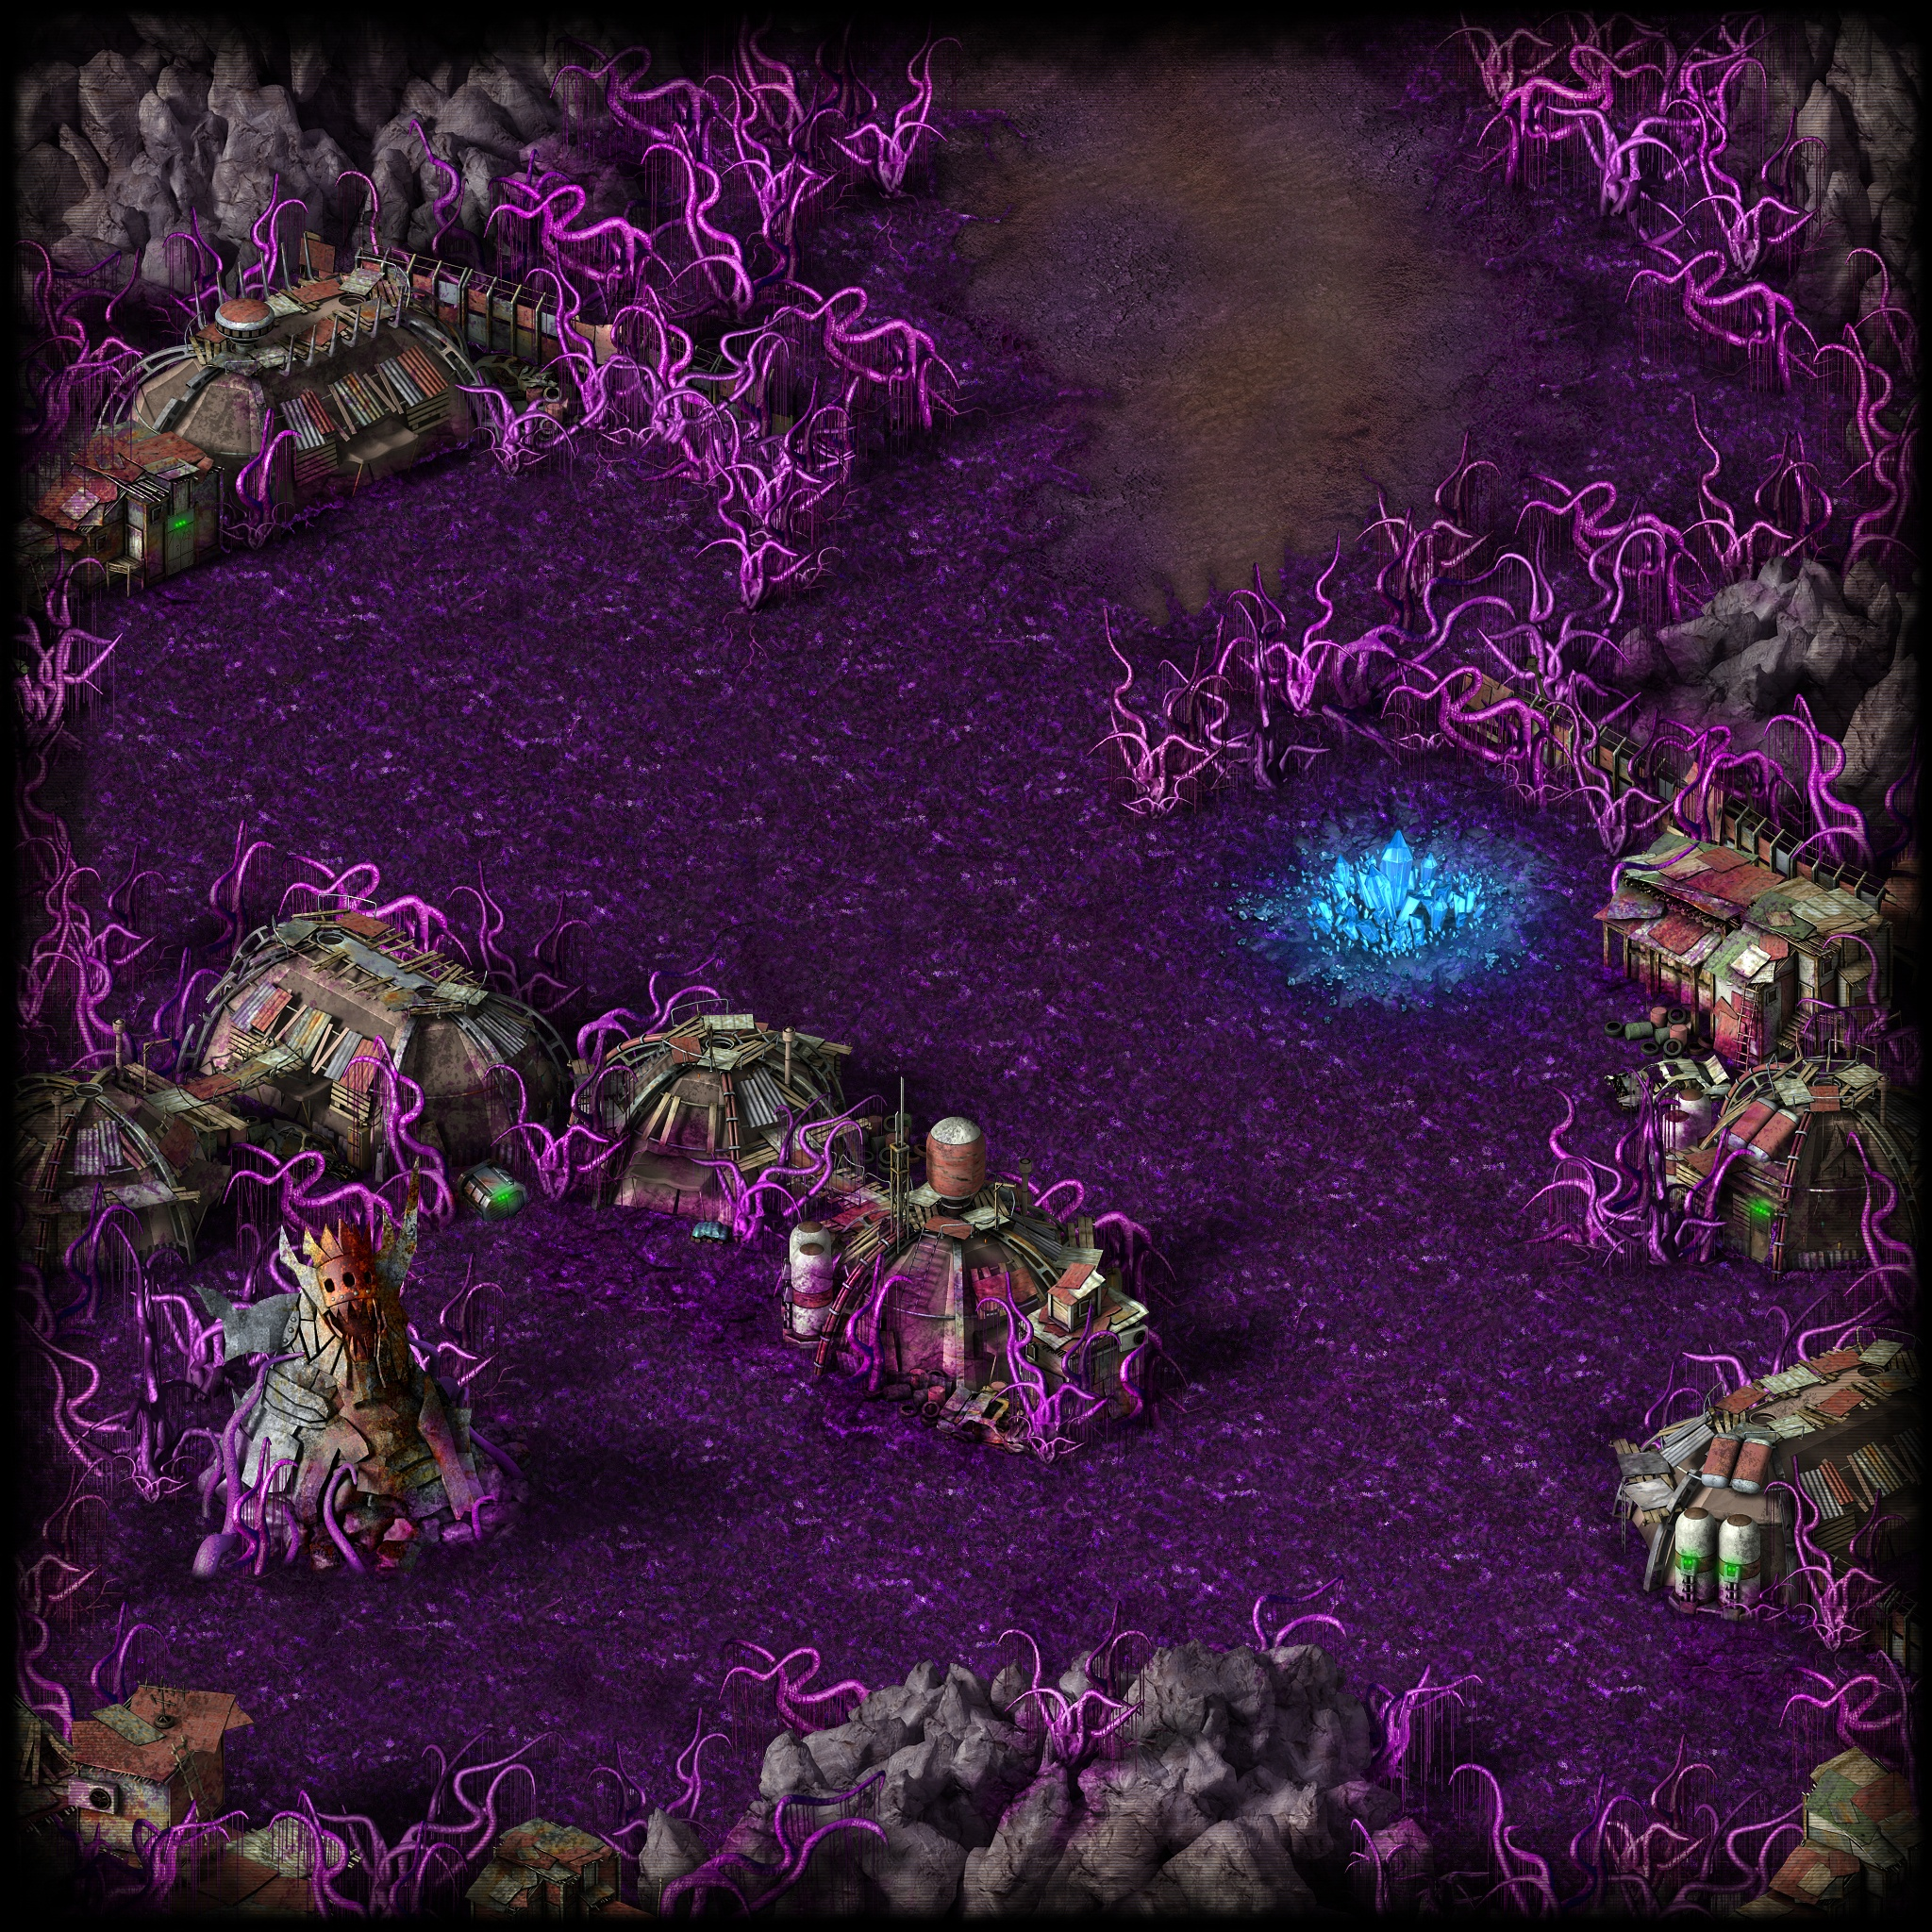 Initial View of Crystallite Deposit Location